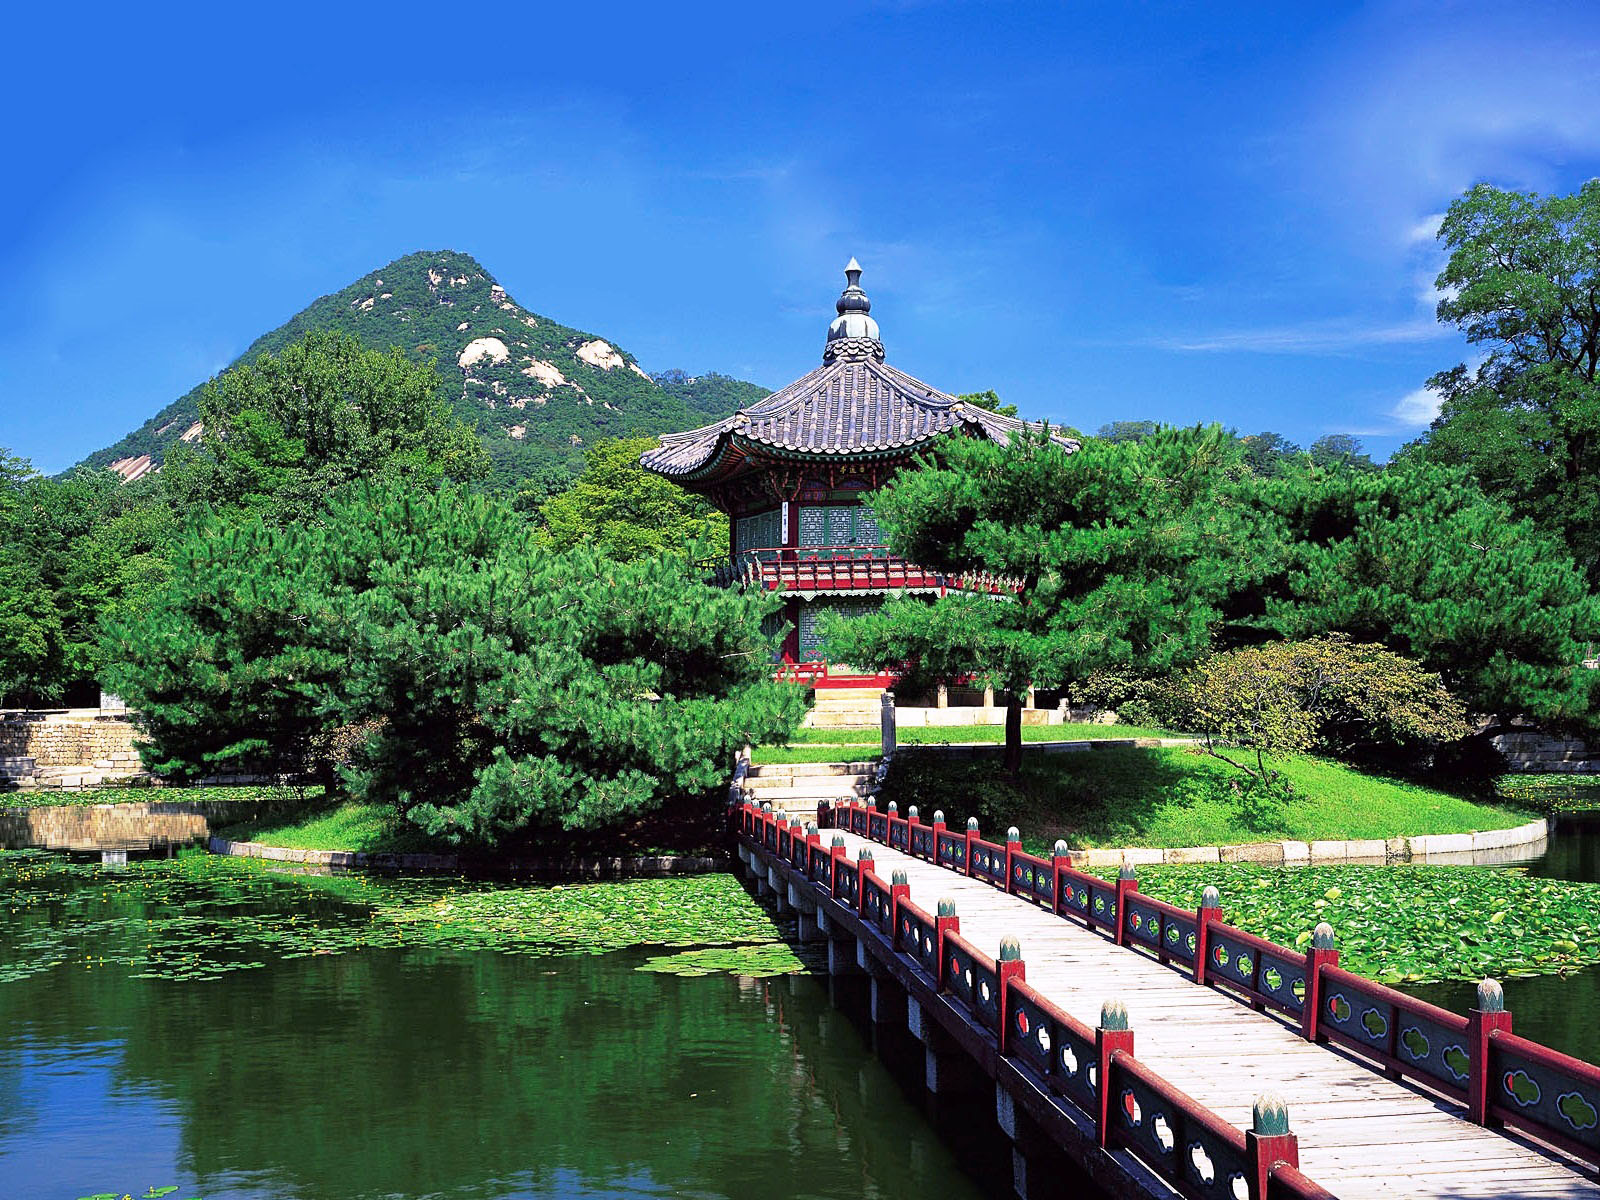 south korea travel and tourism Explore south korea holidays and discover the best time and places to visit | split by a hair-trigger border, the korean peninsula offers the traveller a dazzling range of experiences, beautiful landscapes and 5000 years of culture and history.